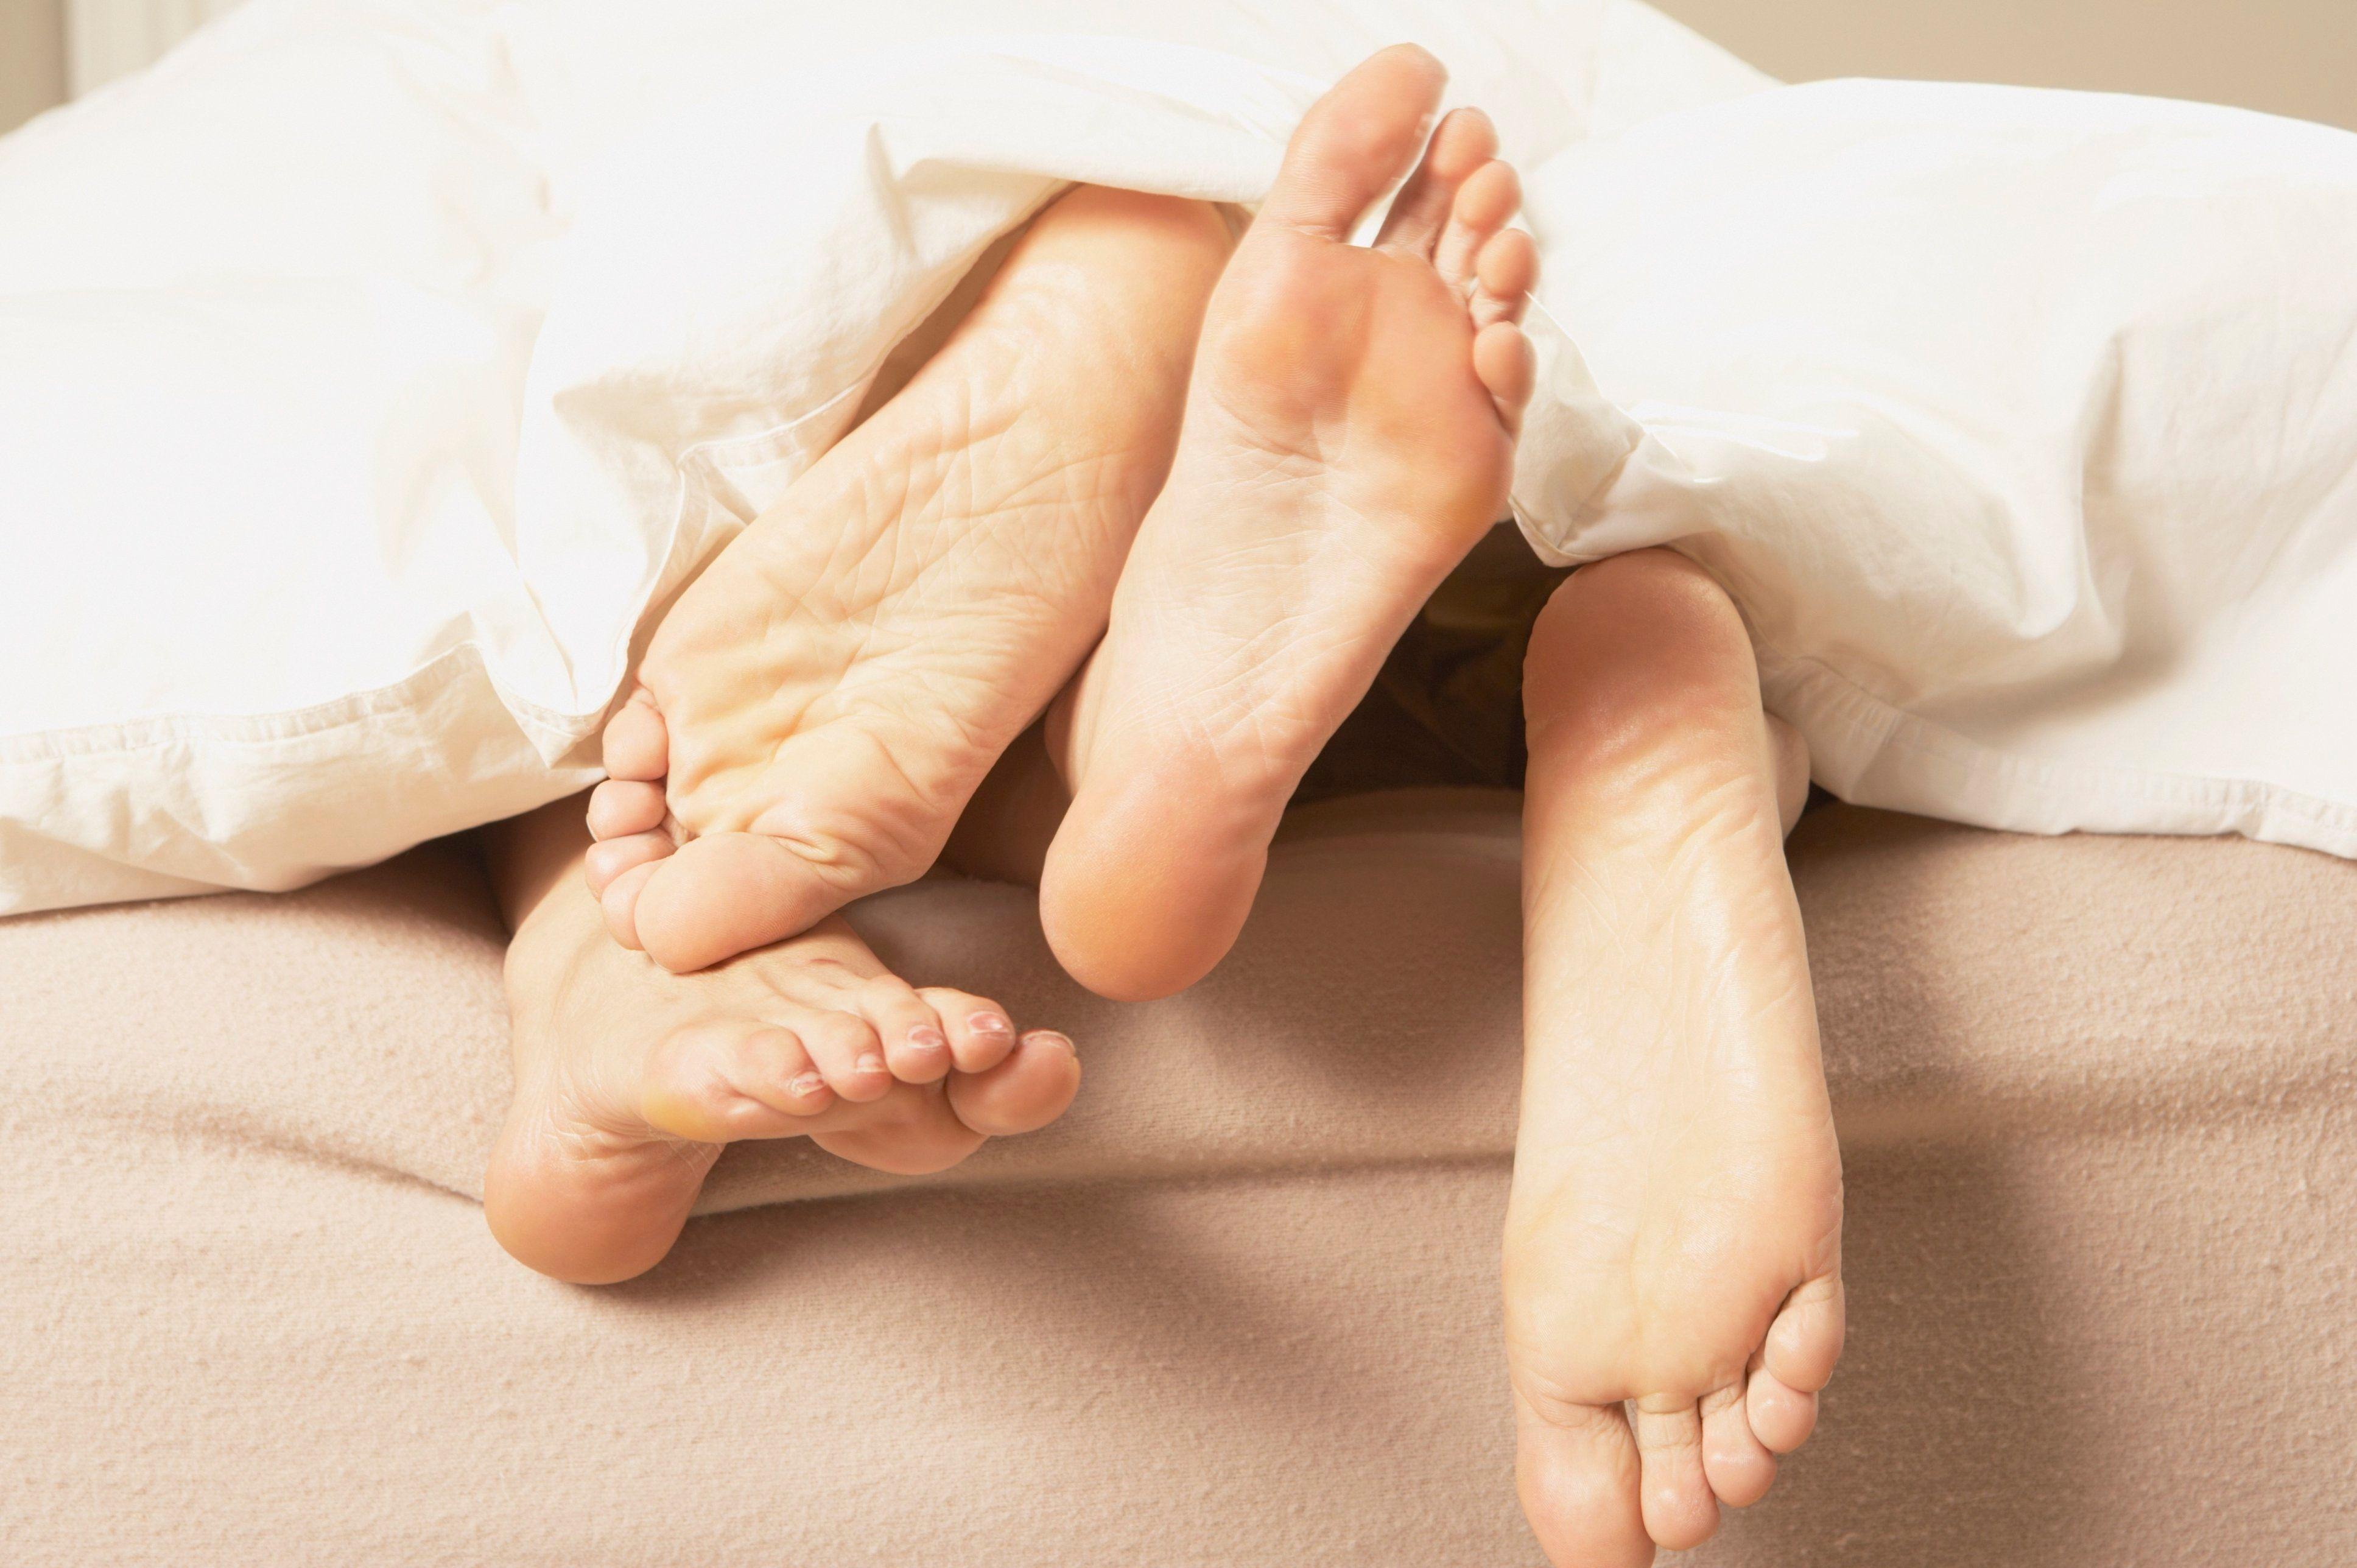 Close up of couple's bare feet sticking out from under the covers